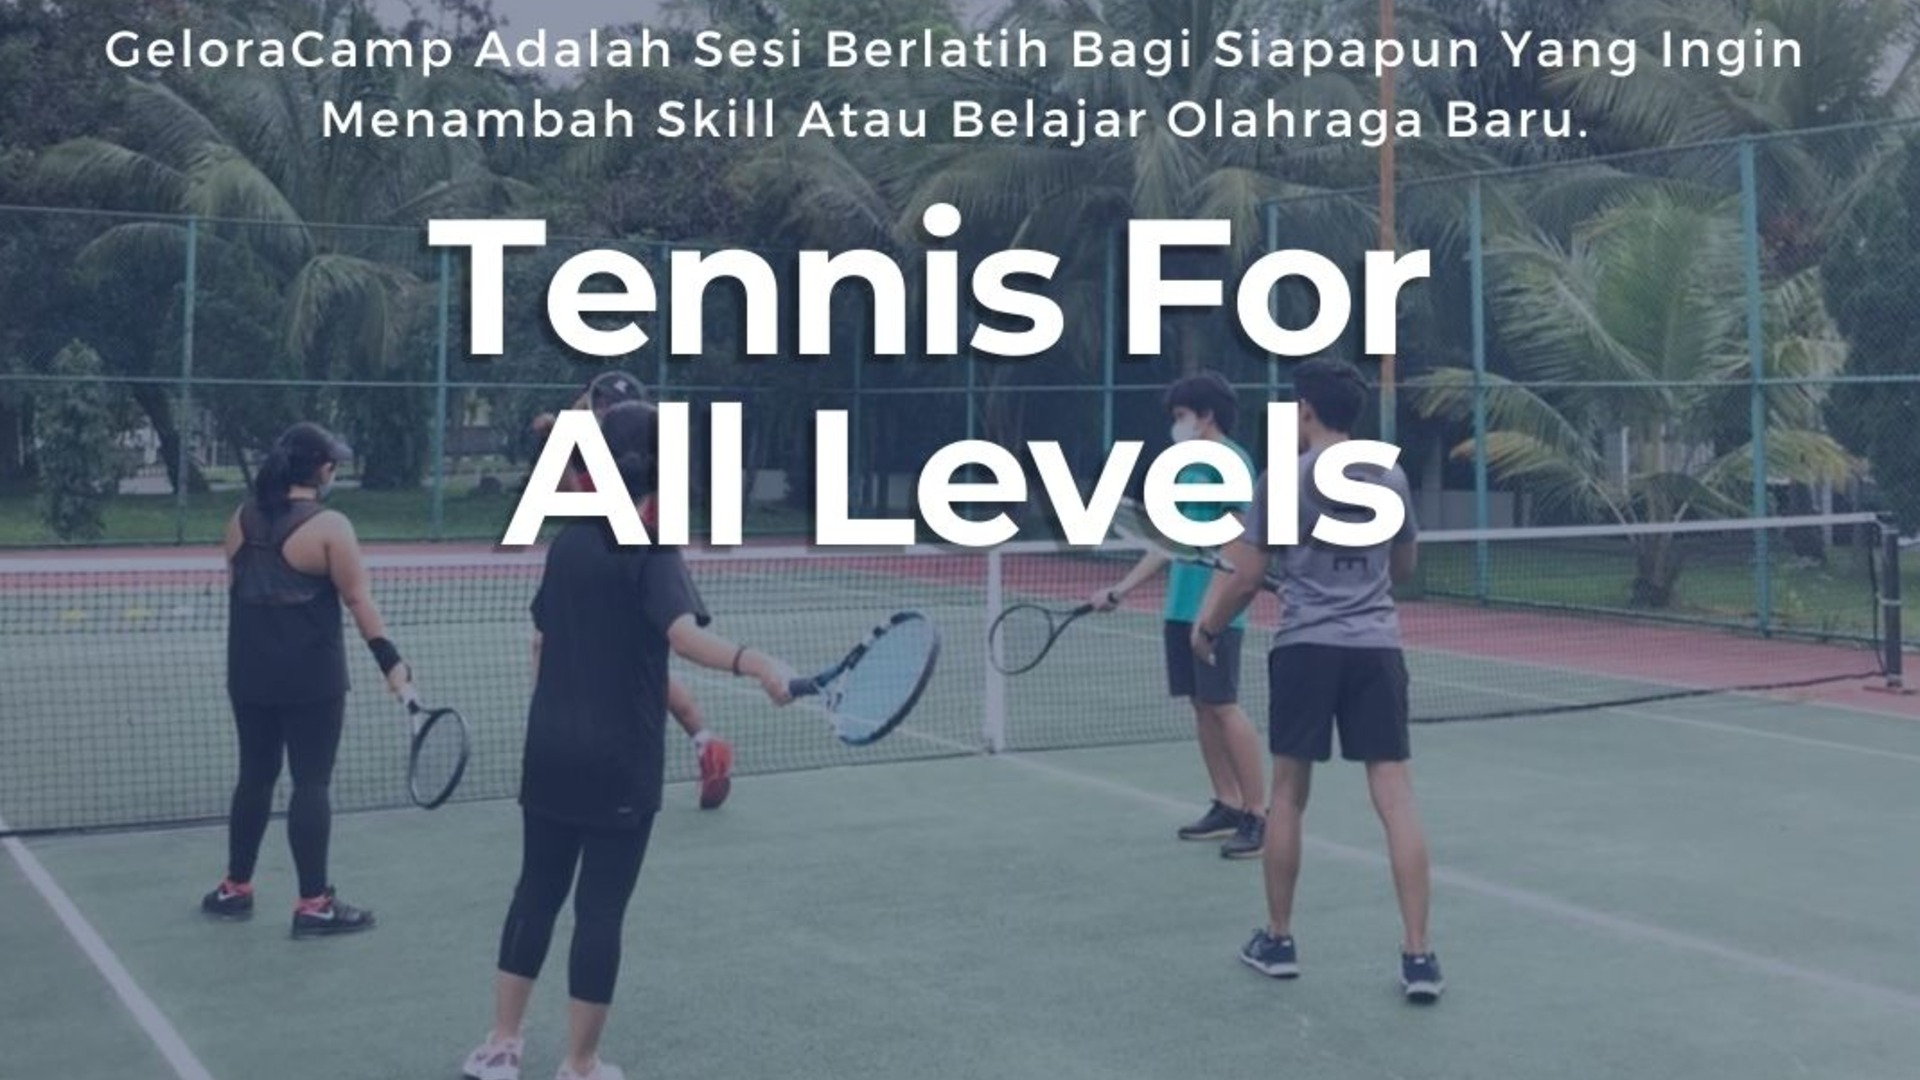 Tenis For All Levels at Tennis Squash Rackets Club 25 Kemang